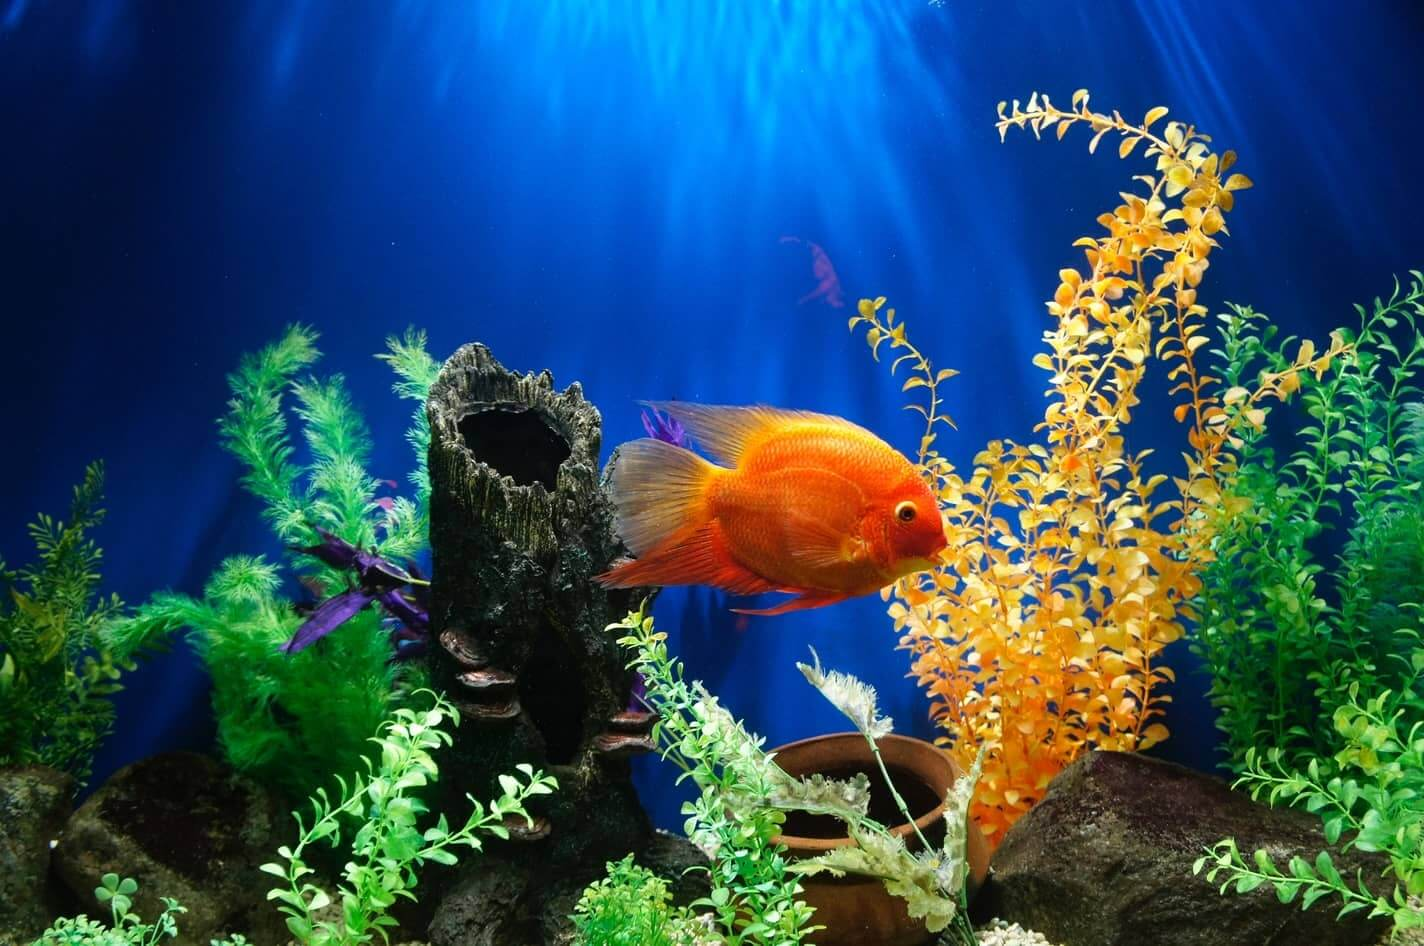 Fish swimming in a properly cycled tank